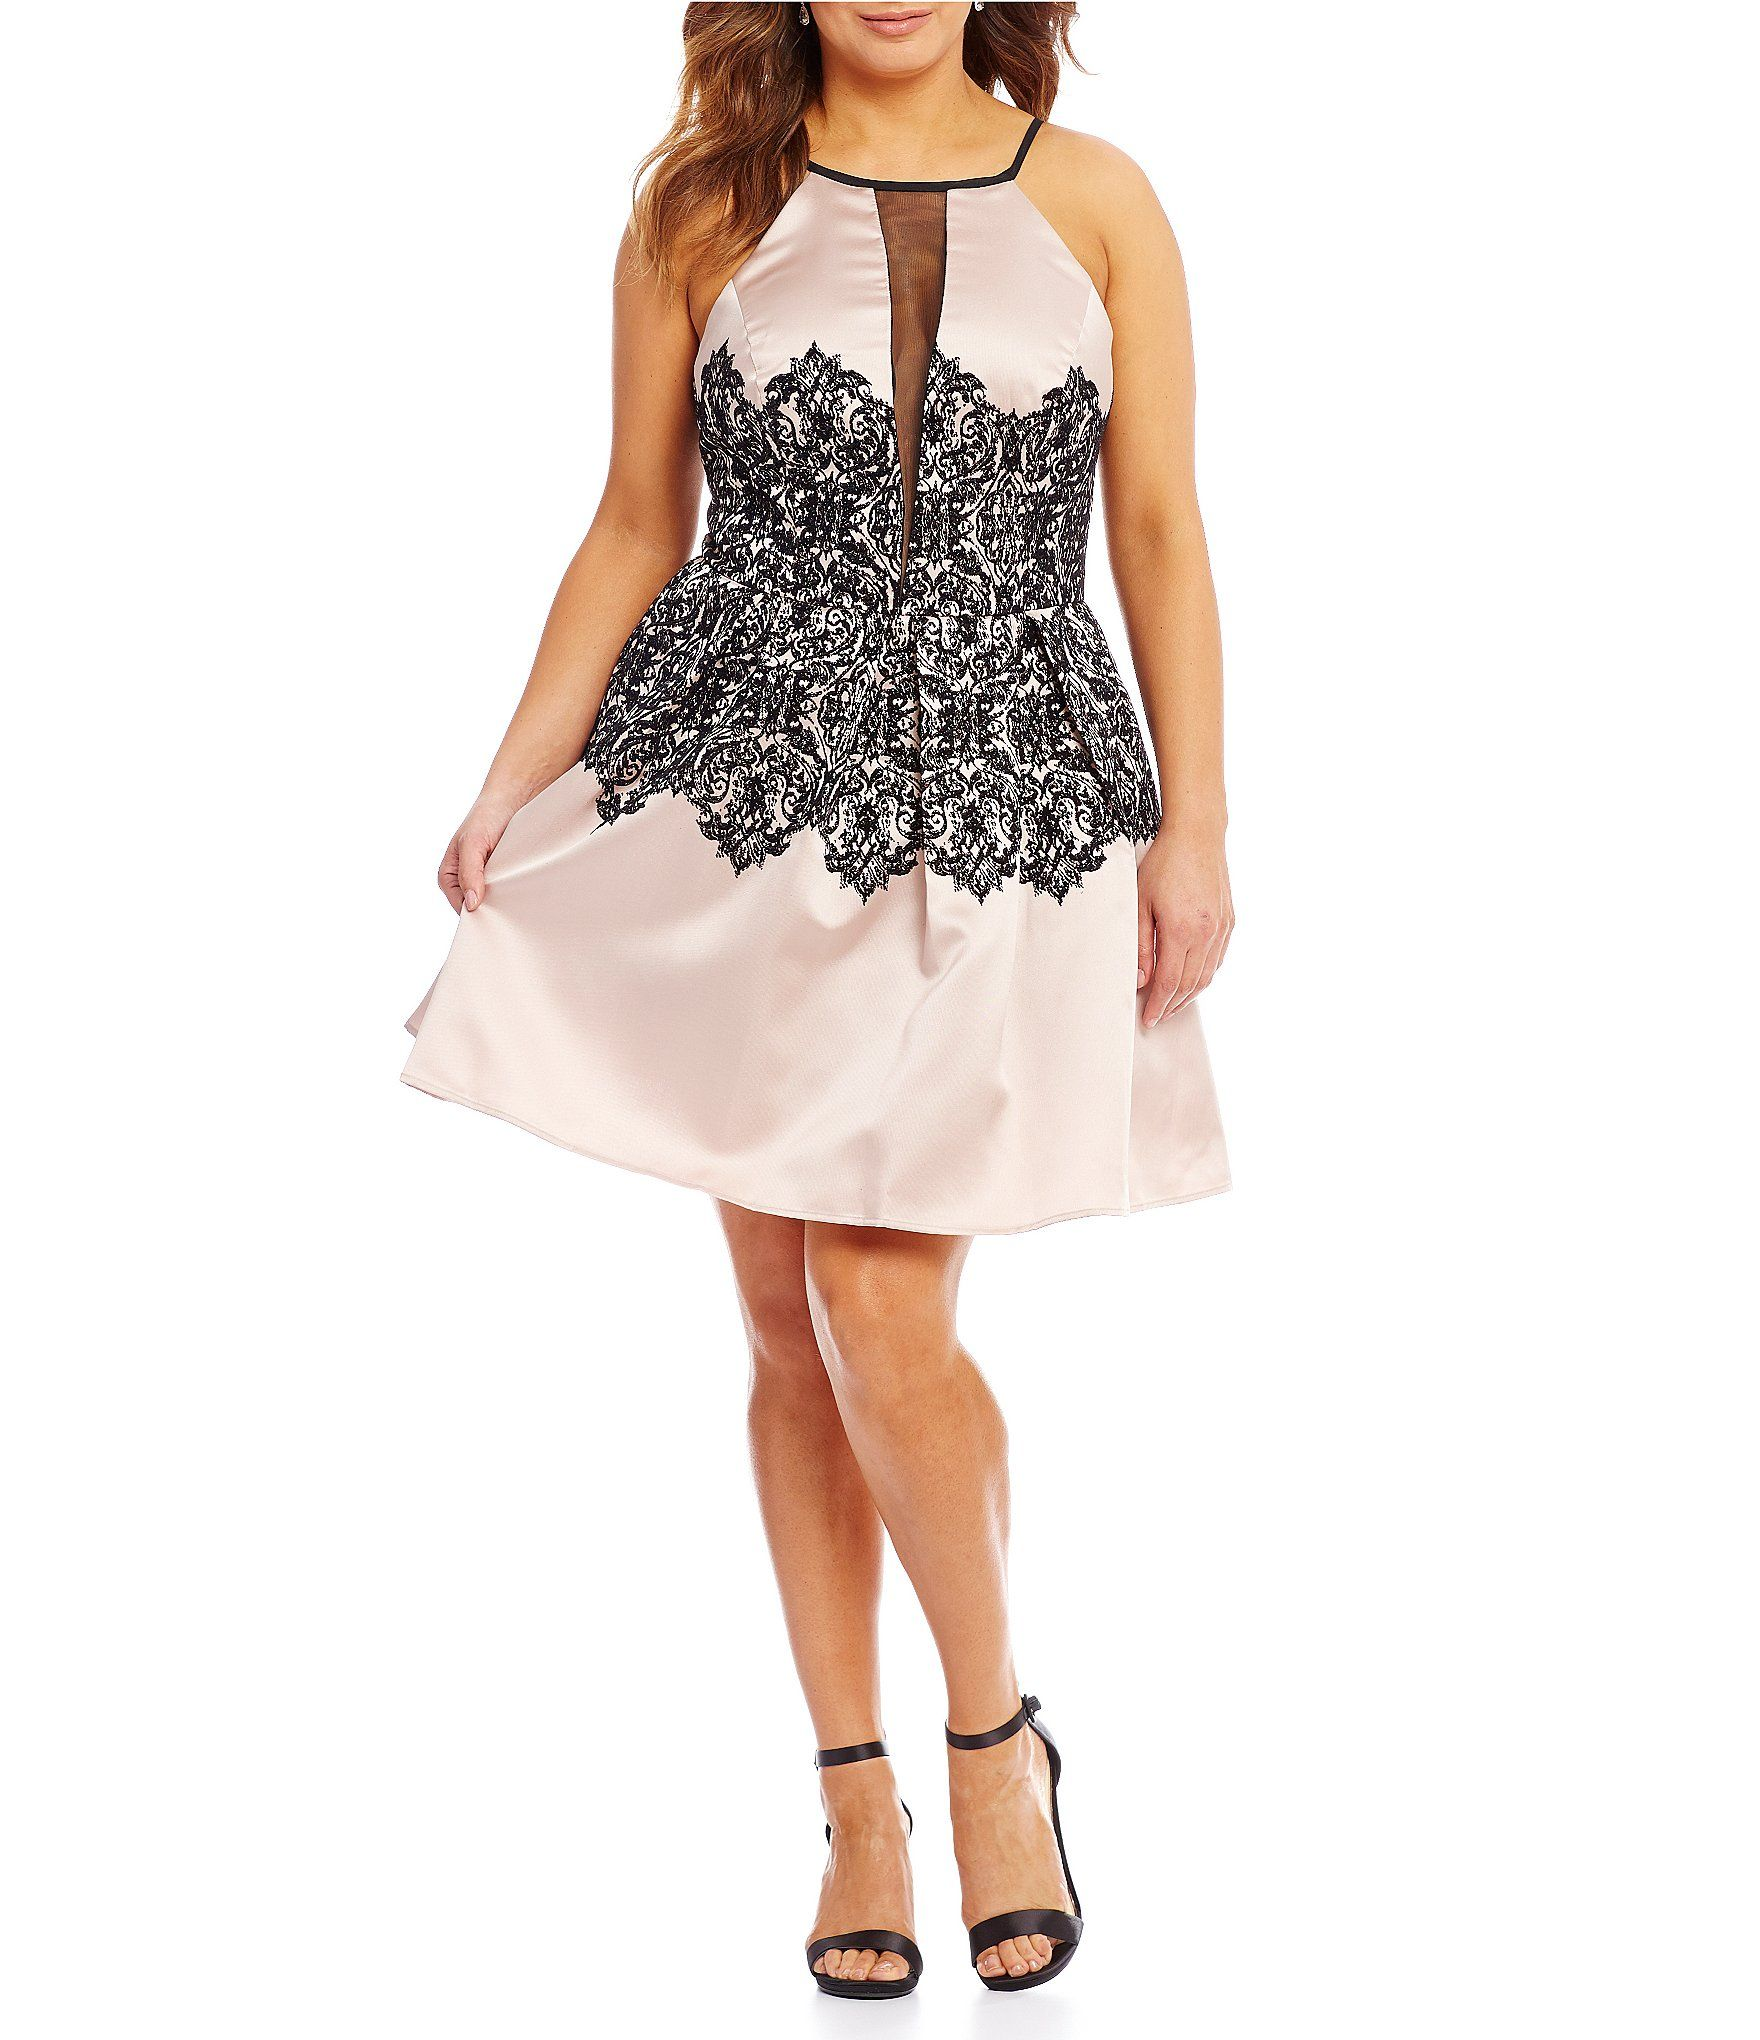 Splendent Glitter Flocked Dress Dillards Teeze Me Teeze Me Glitter Flocked Fitandflare Dress Drea Dillards Homecoming Dresses 2016 Dillards Homecoming Dresses 2017 Coupons